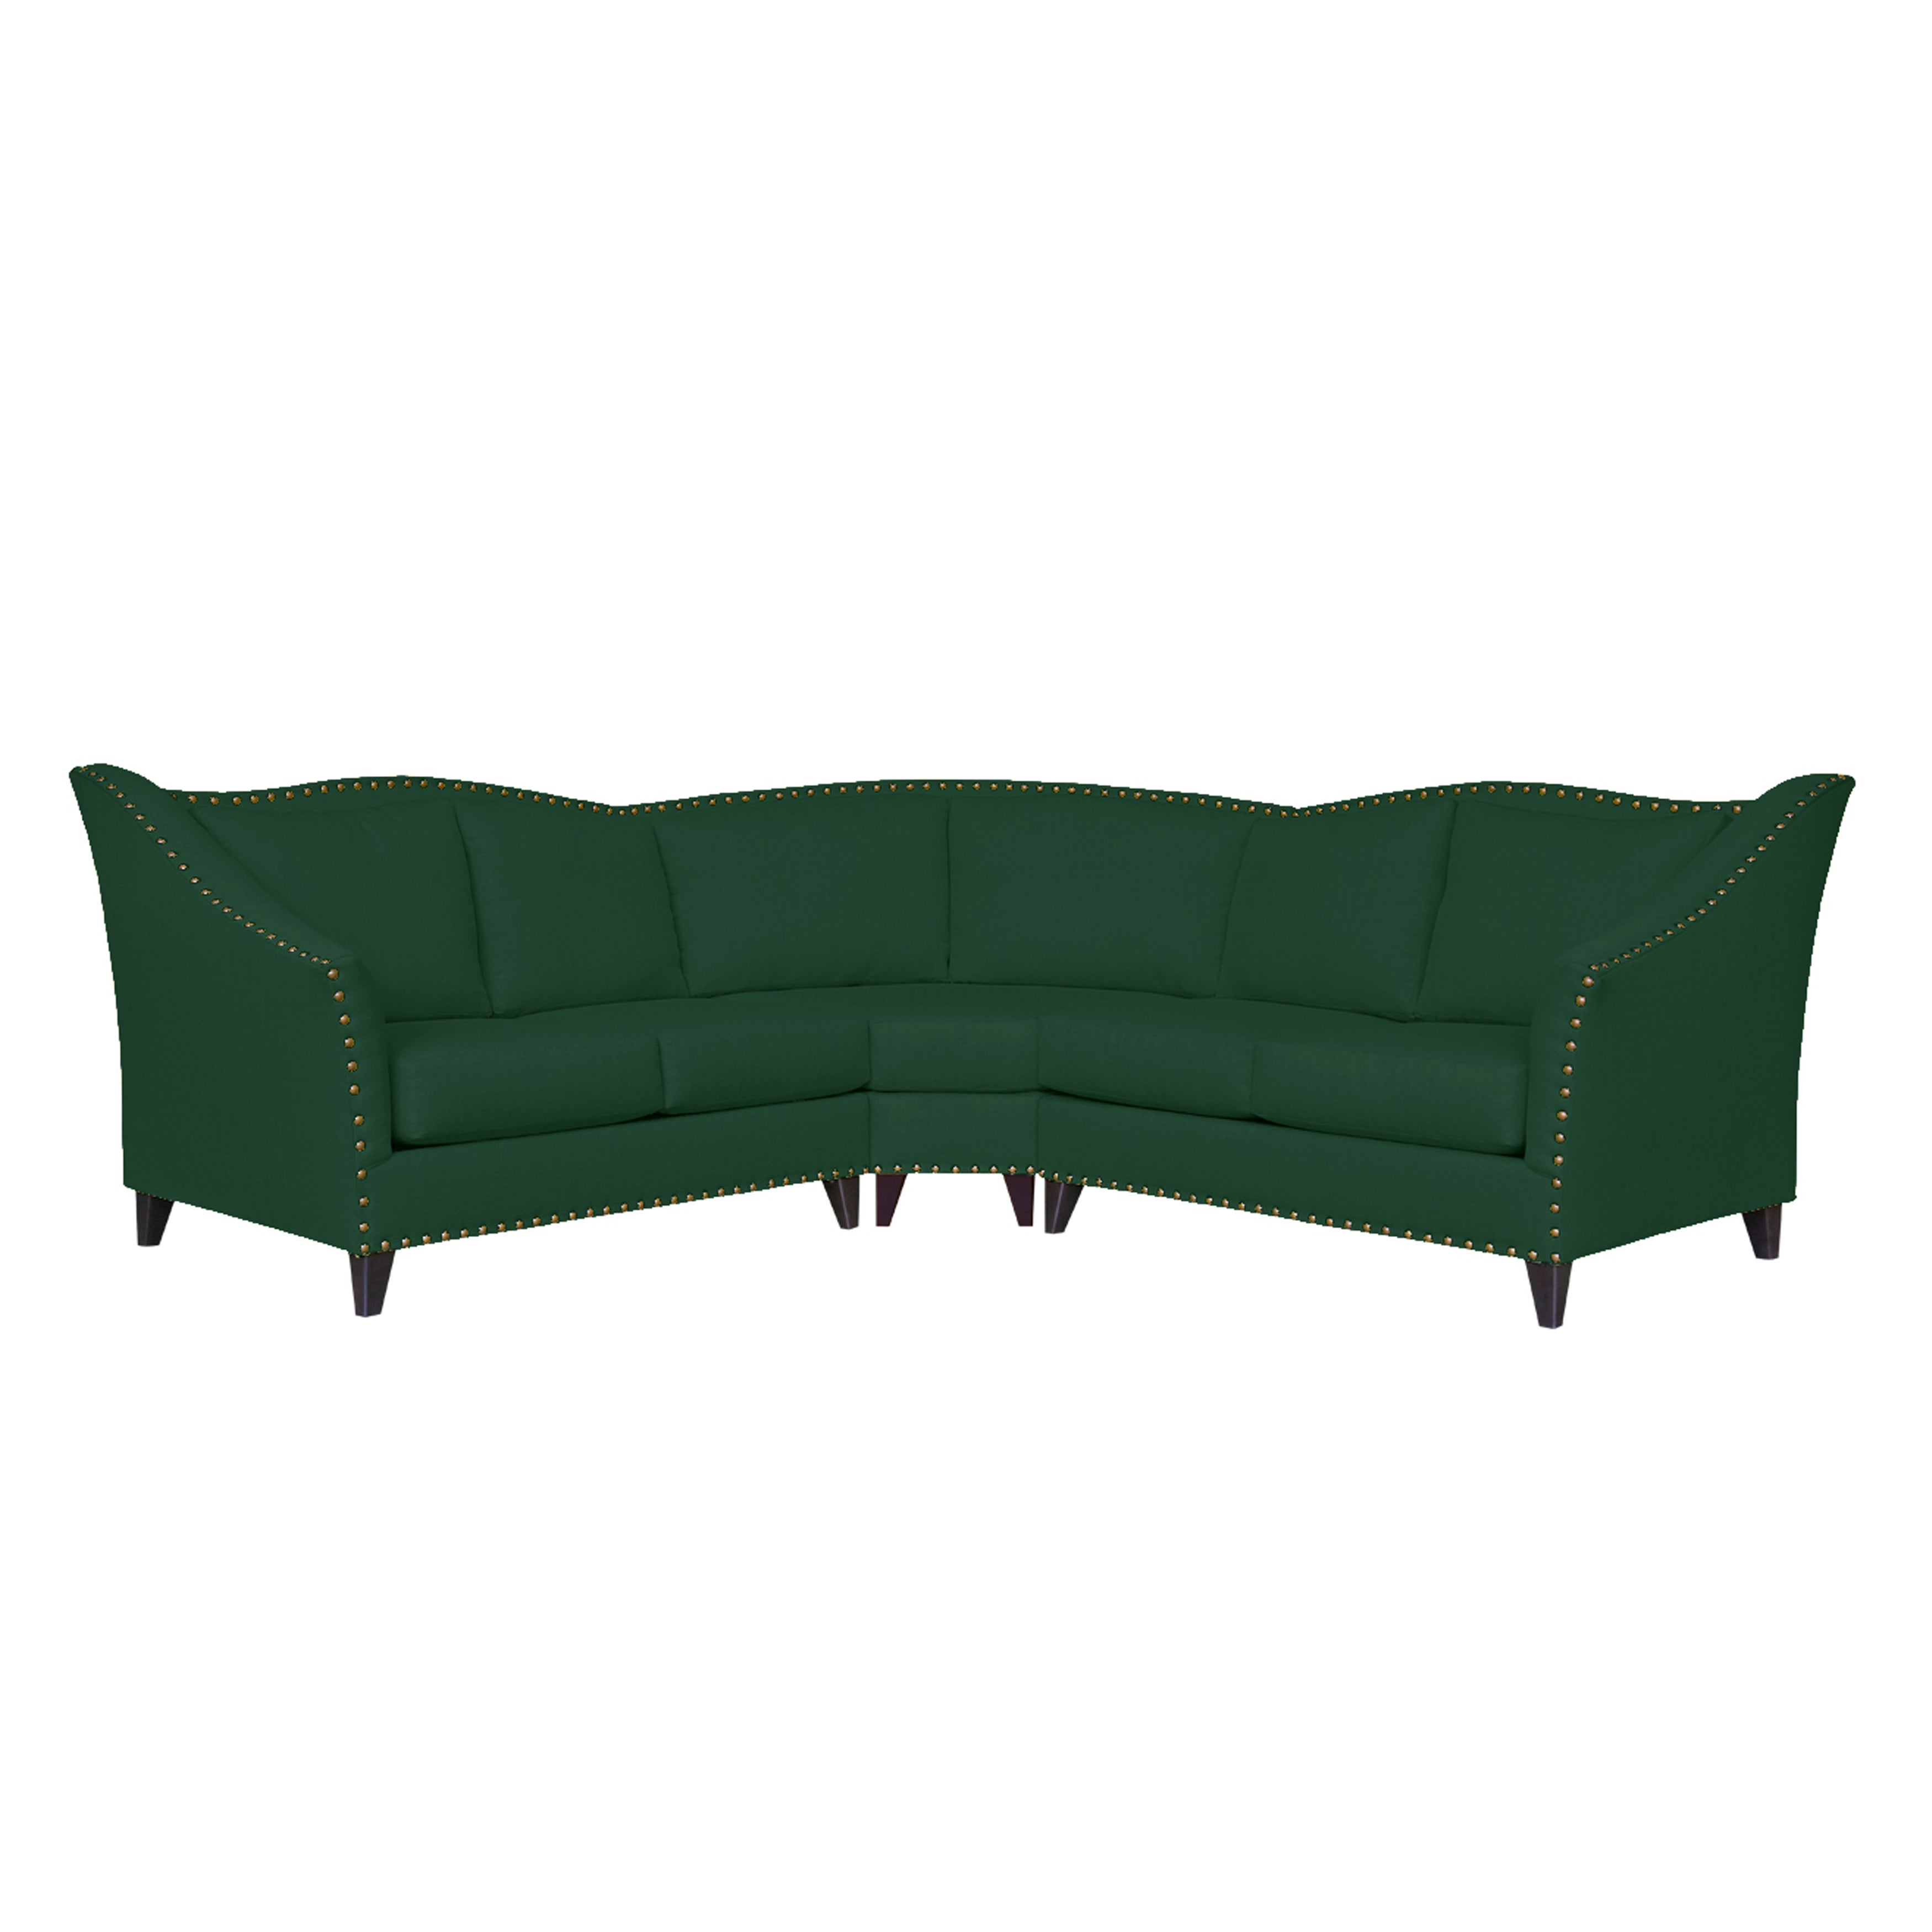 and sofa green colyn emerald brushed stainless in couch chaise sectional reversible